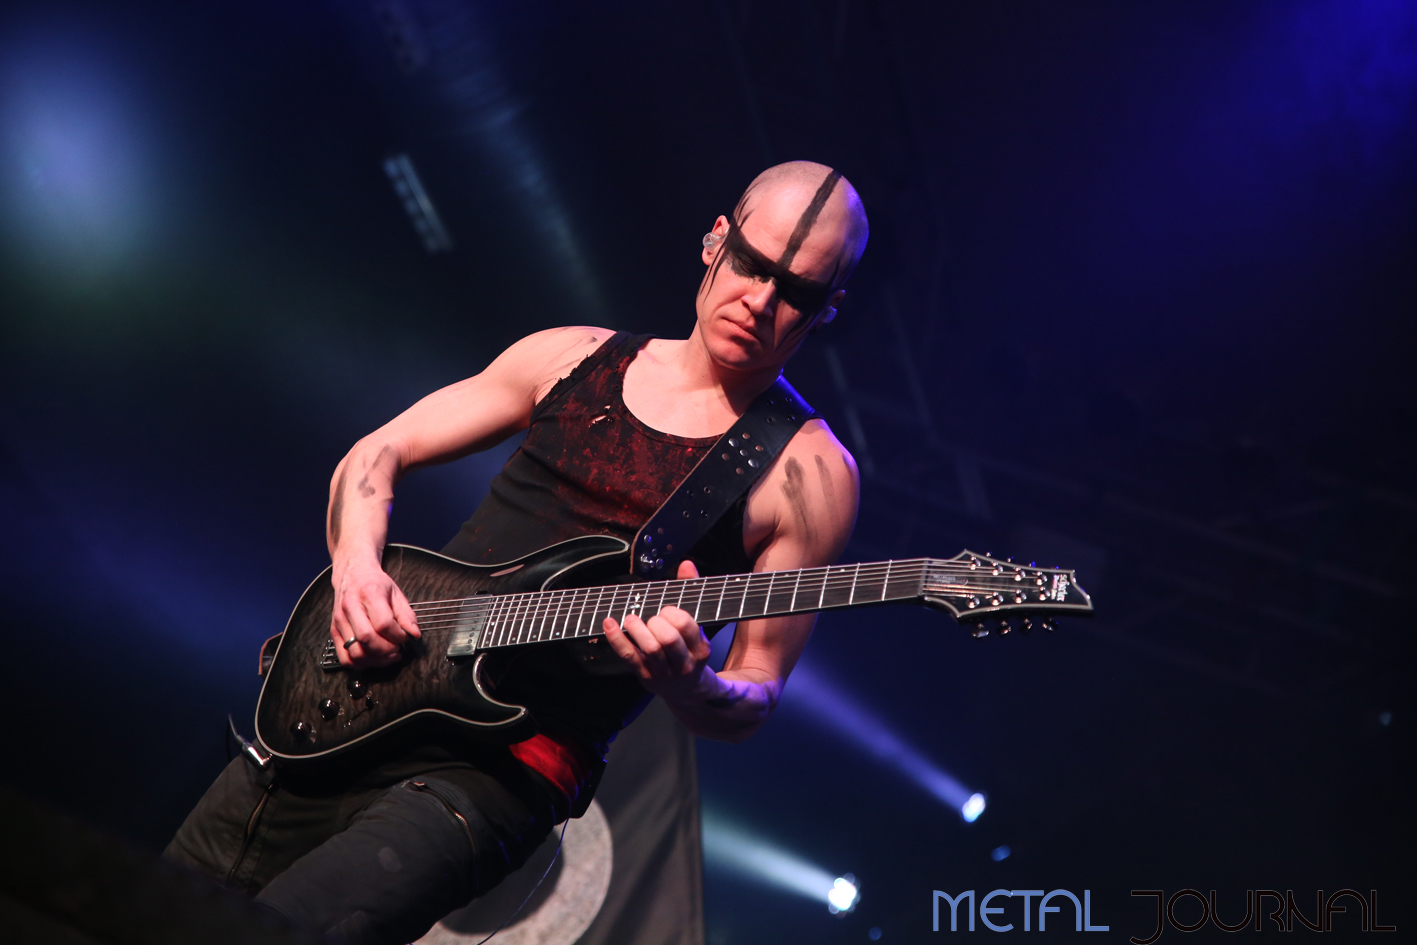 null positiv - metal journal bilbao 2018 pic 3